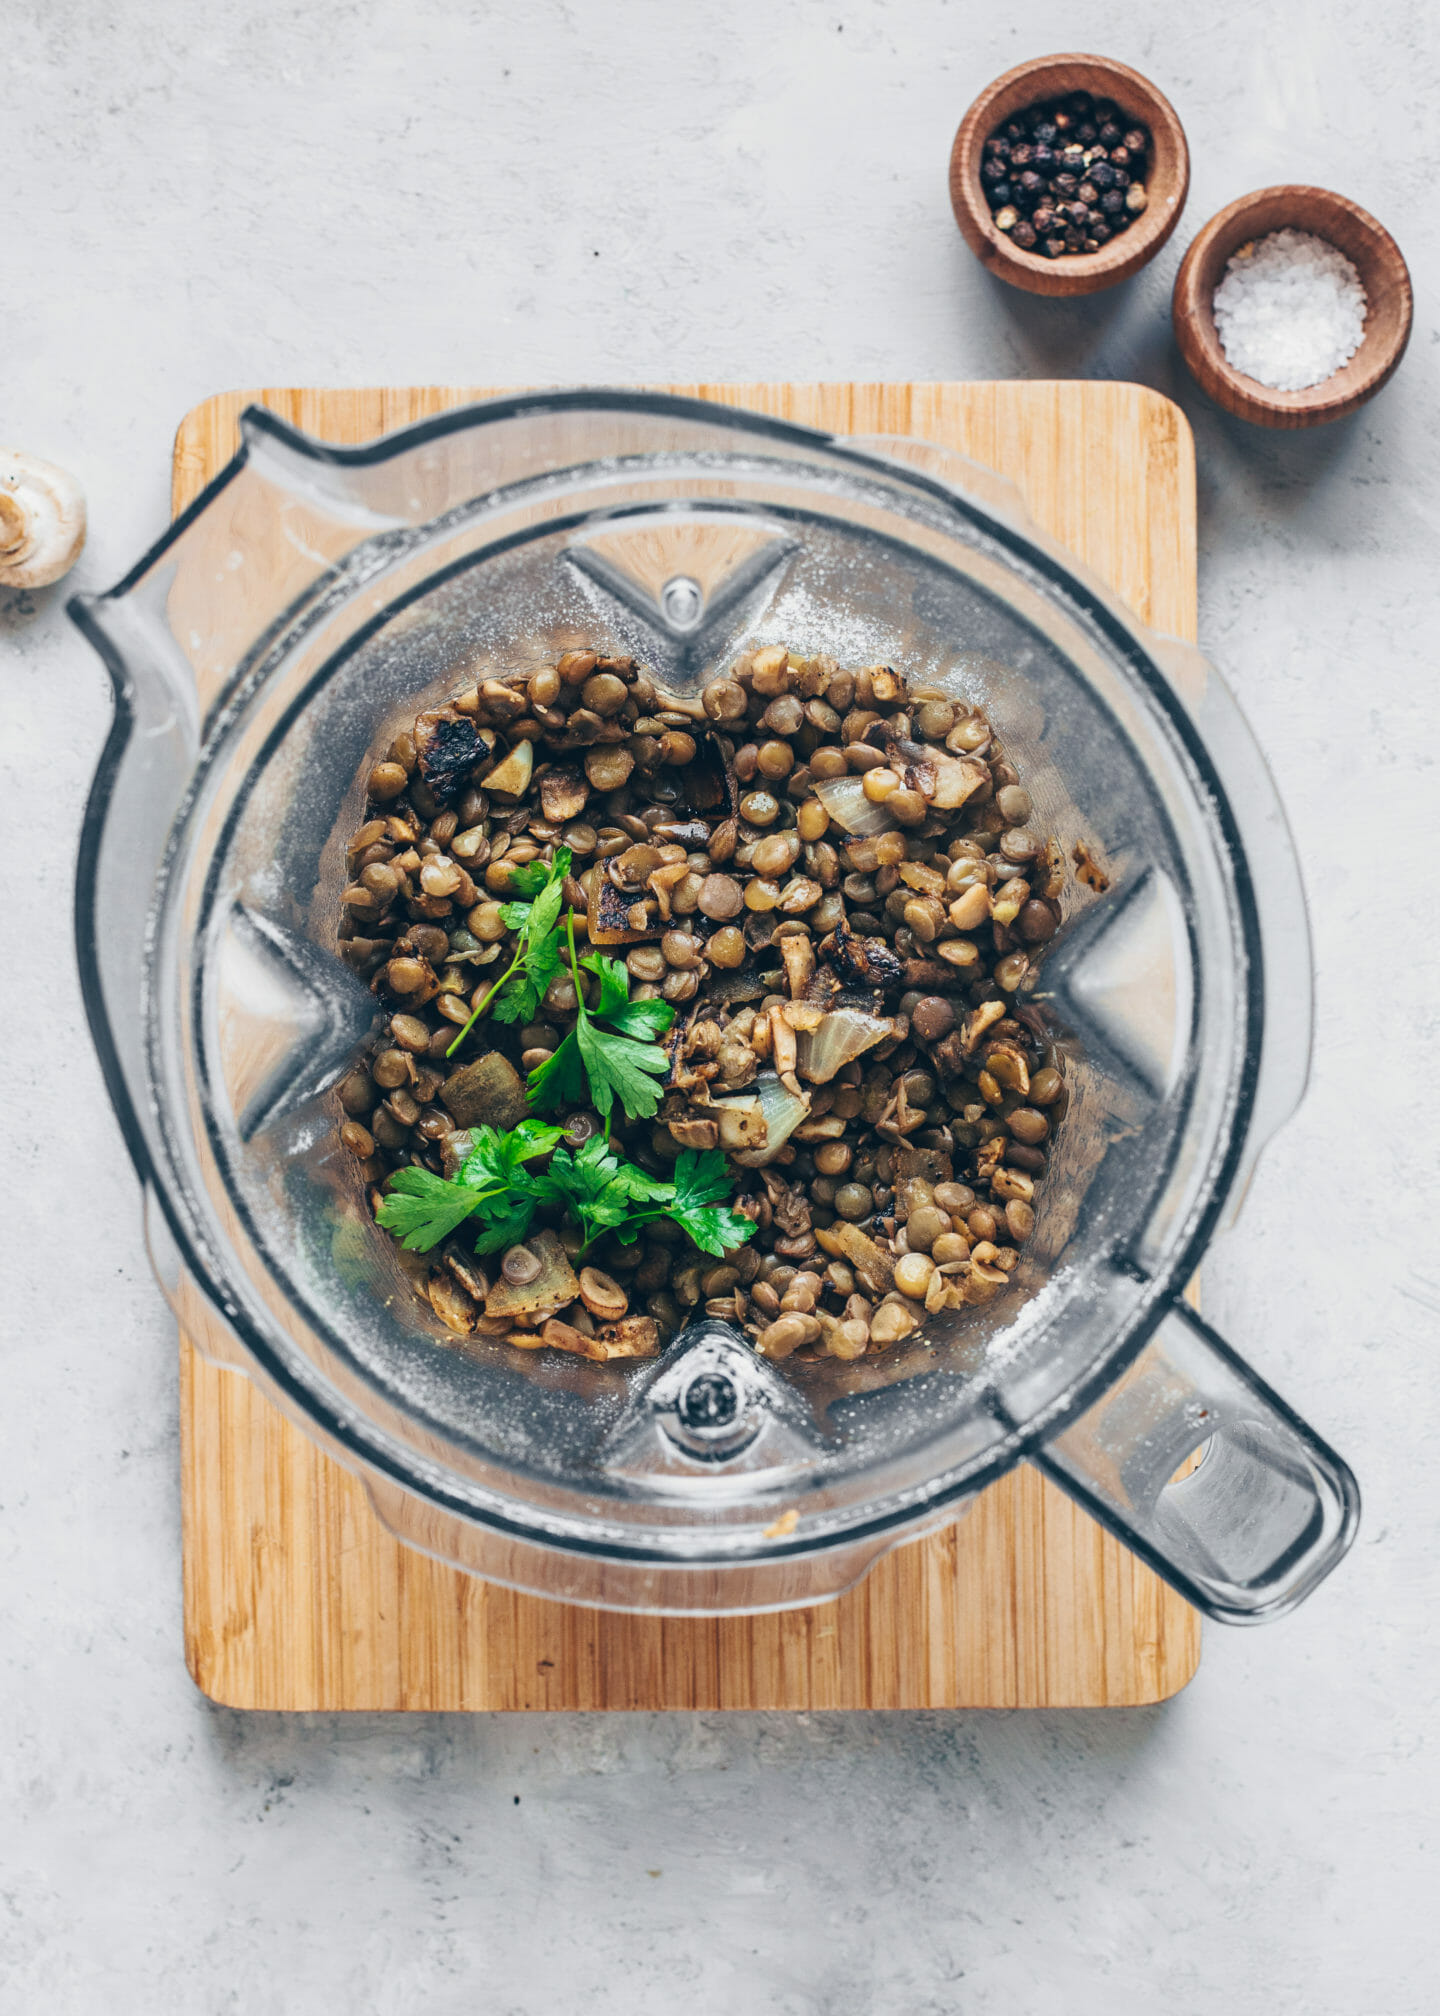 cooked lentils in a blender to make vegan Swedish meatballs